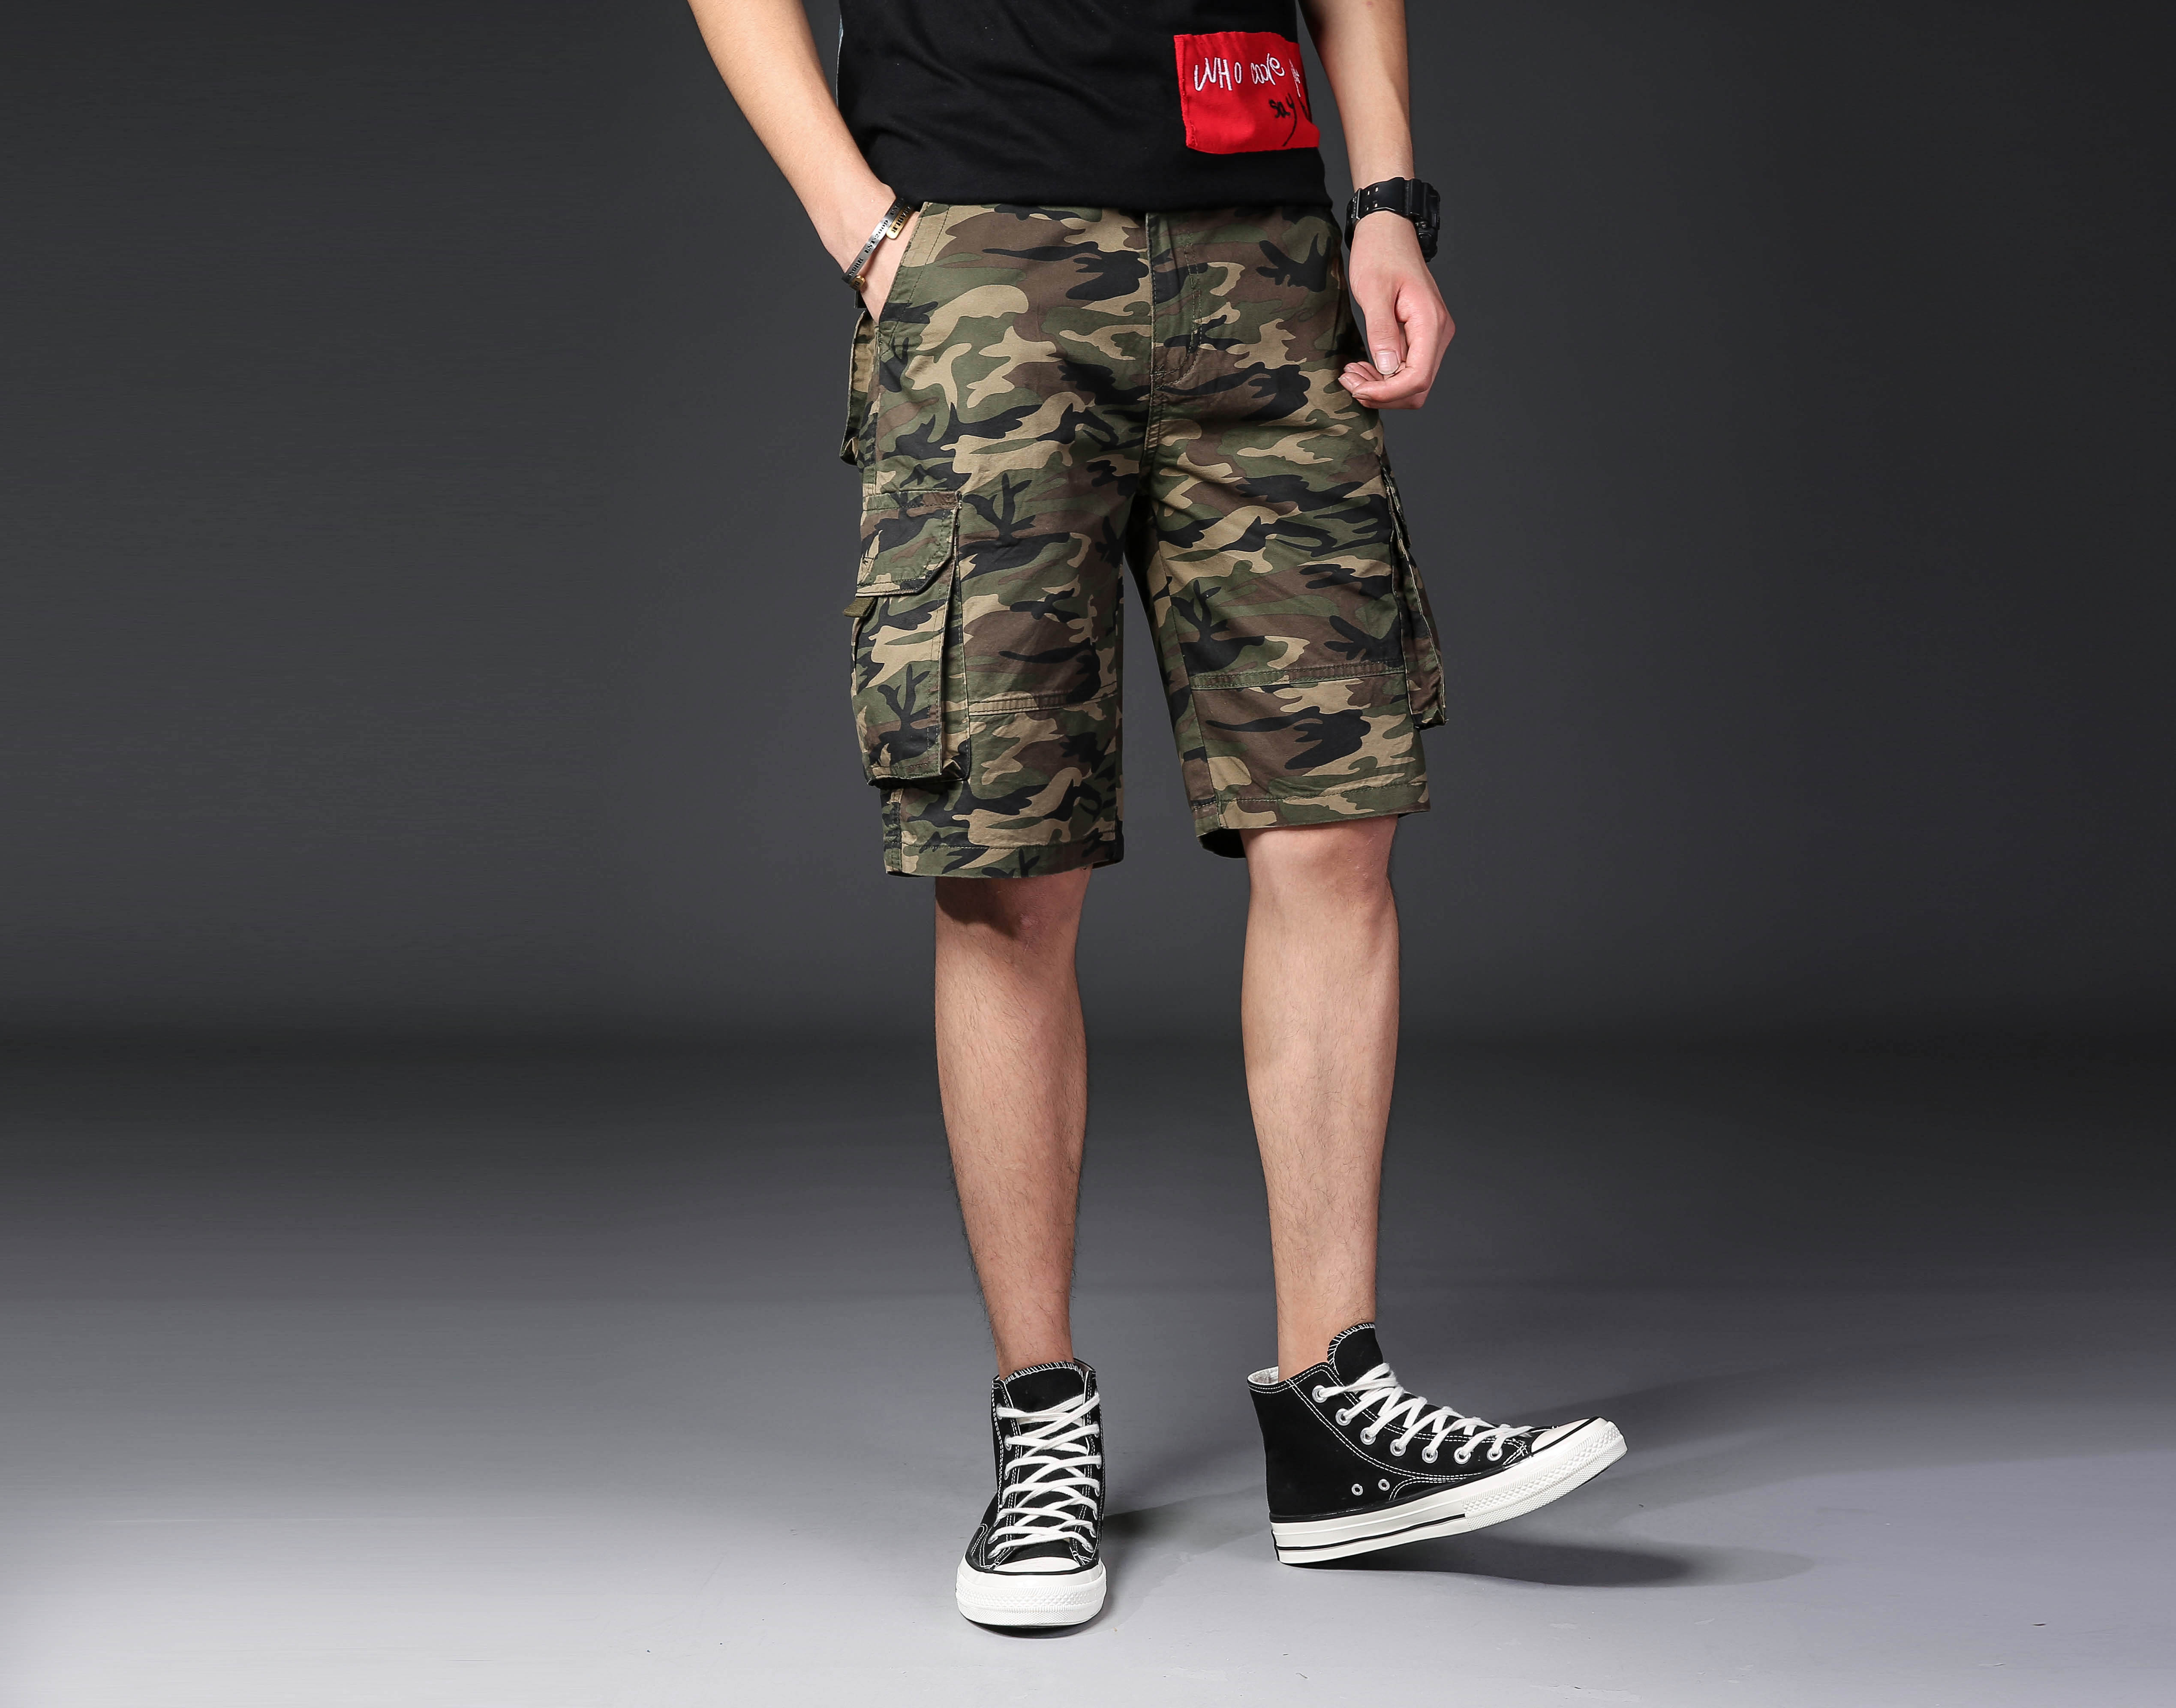 100% Cotton Army Green Camouflage Camo Print Mutil Pockets Military Style Bermuda Cargo Shorts For Men Adults Boys Summer Season